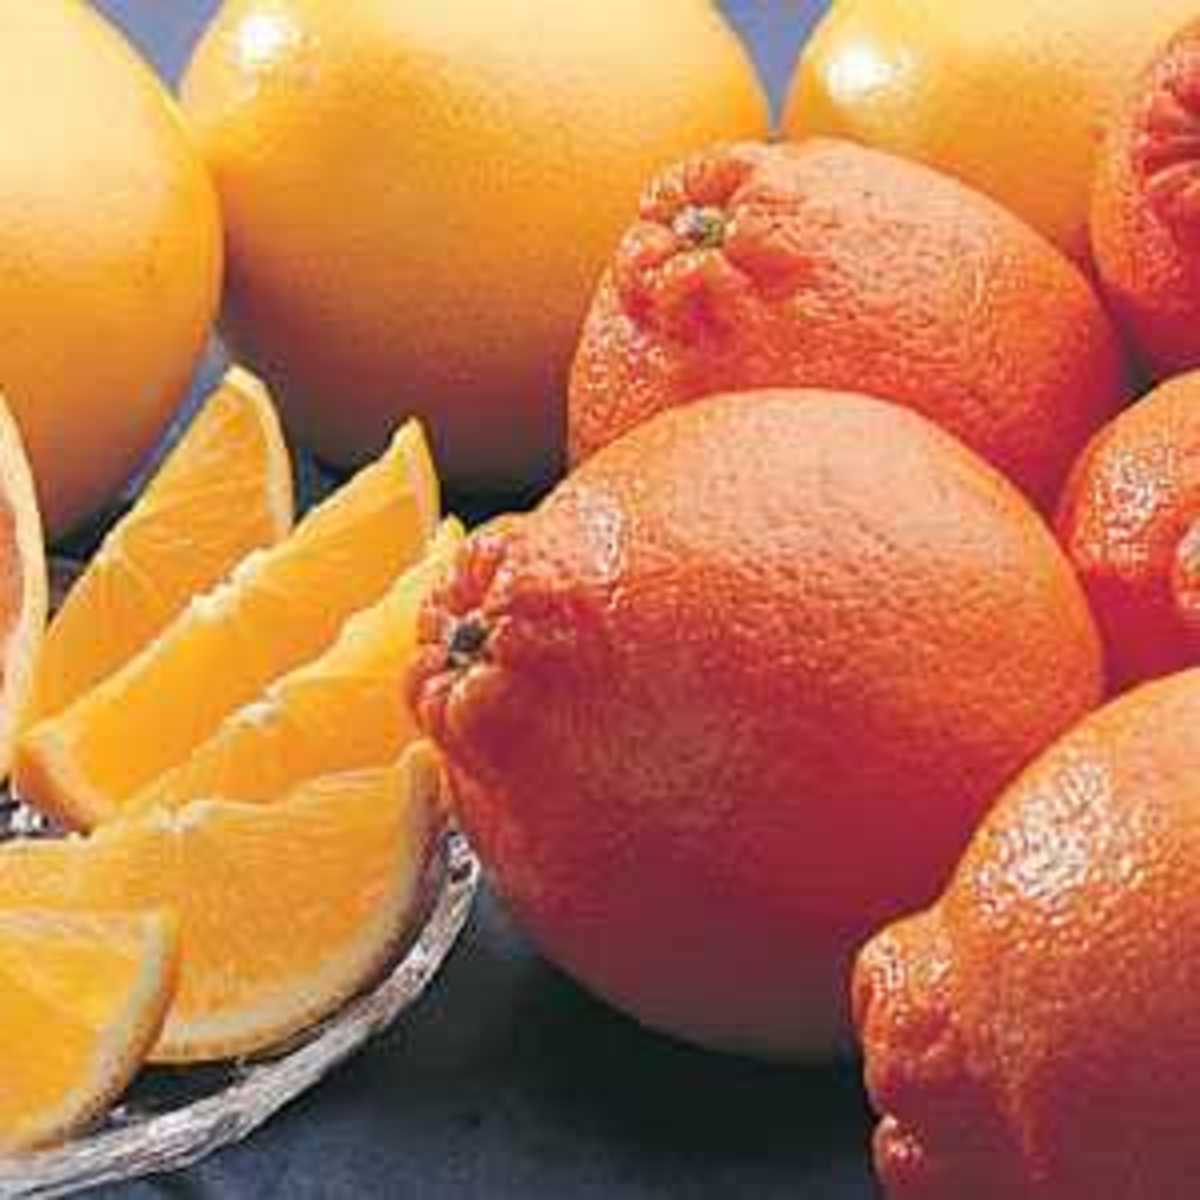 Tangelos, also called Honeybells, peel easily and are among the sweetest of the citrus fruits.